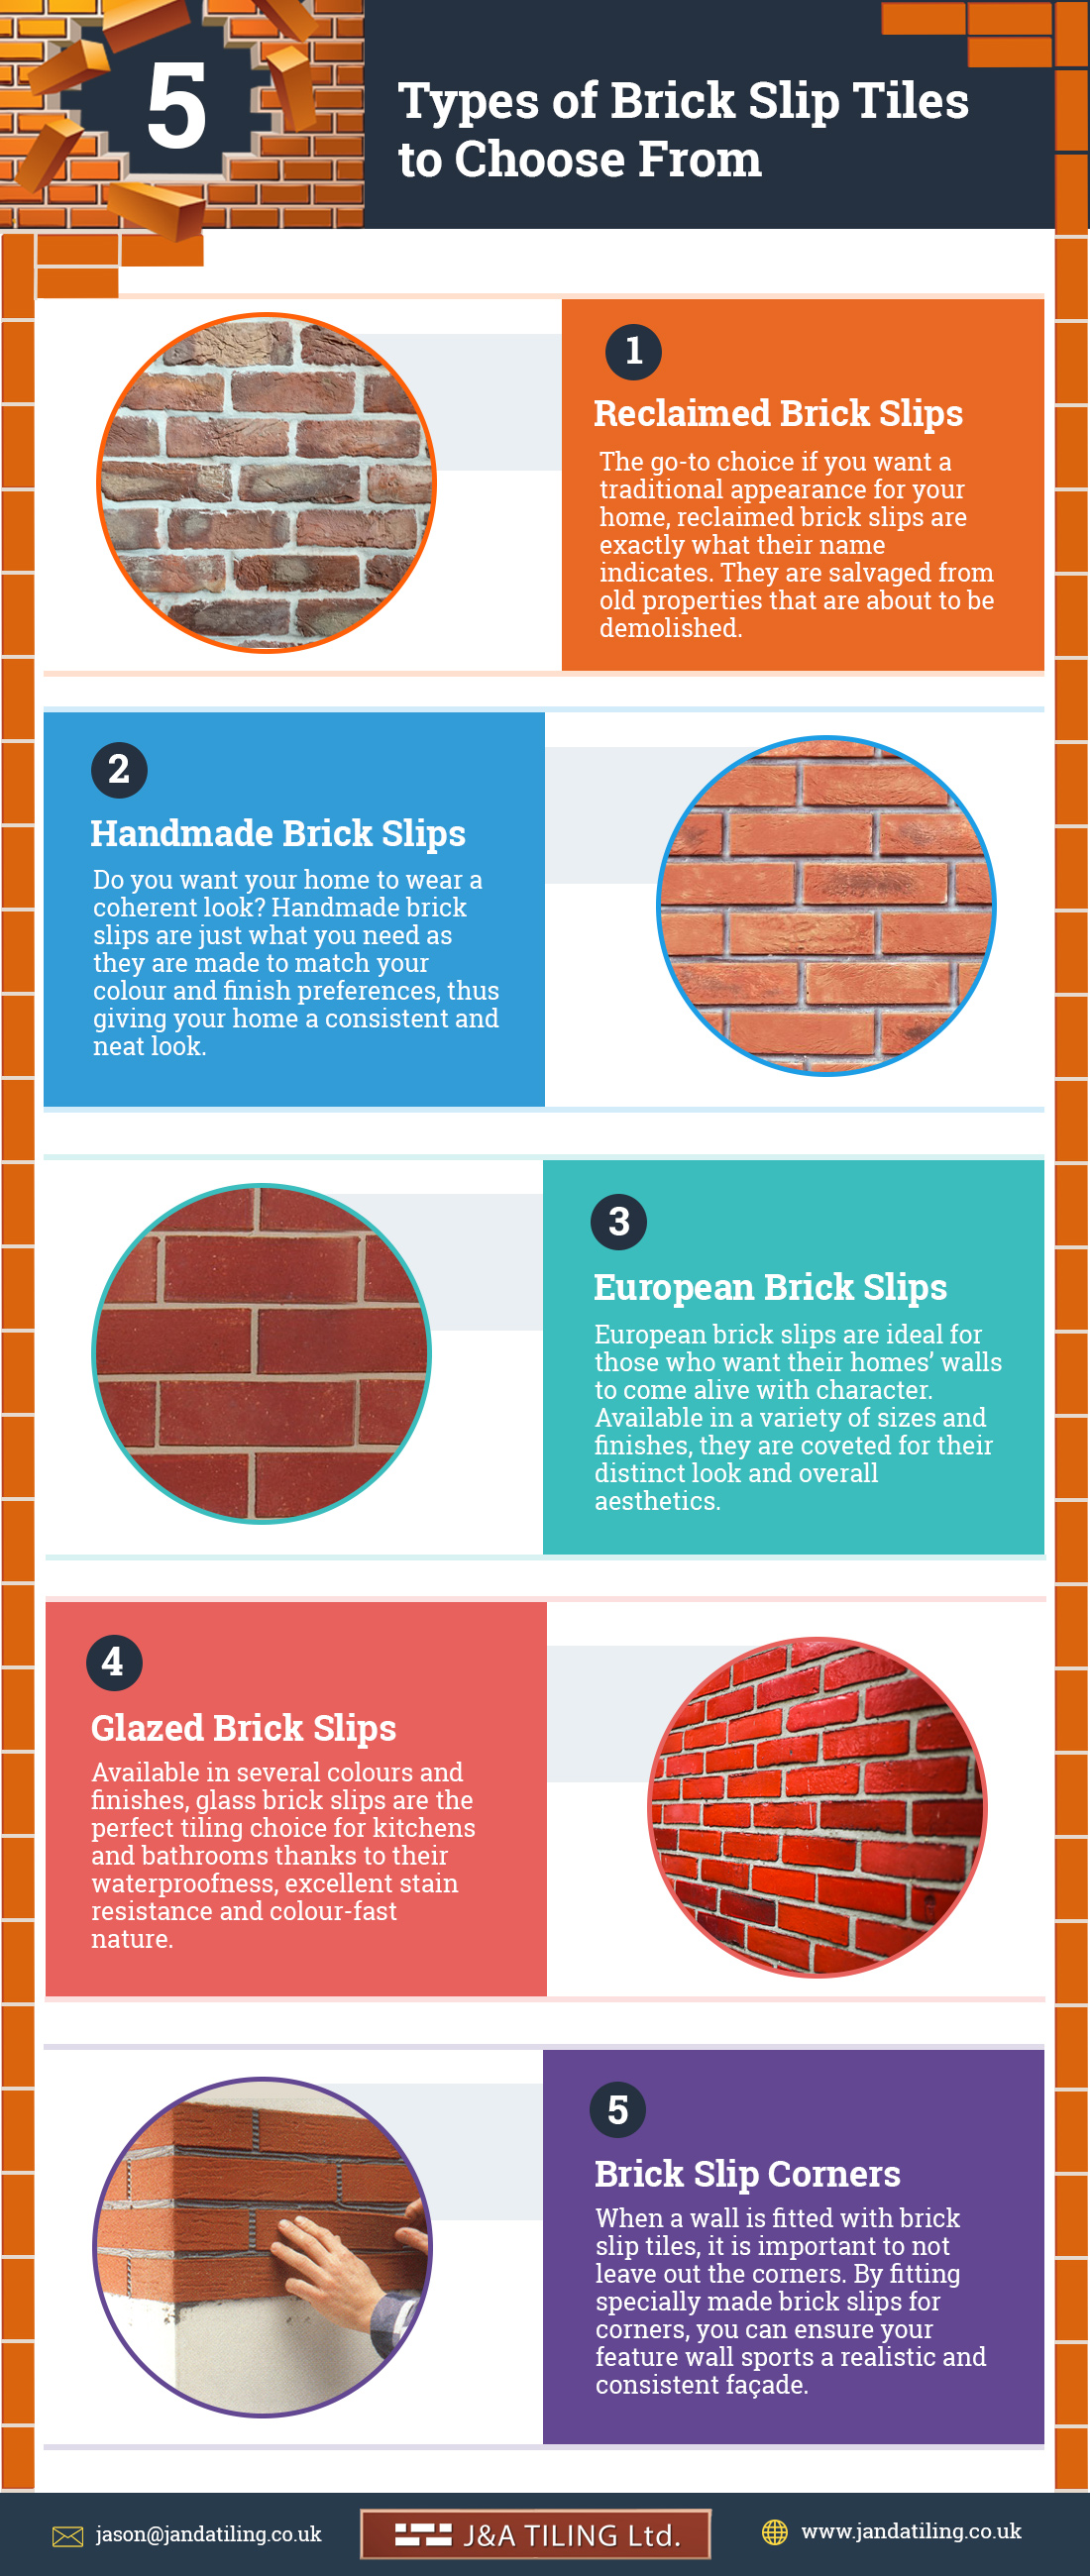 Types of Brick Slip Tiles